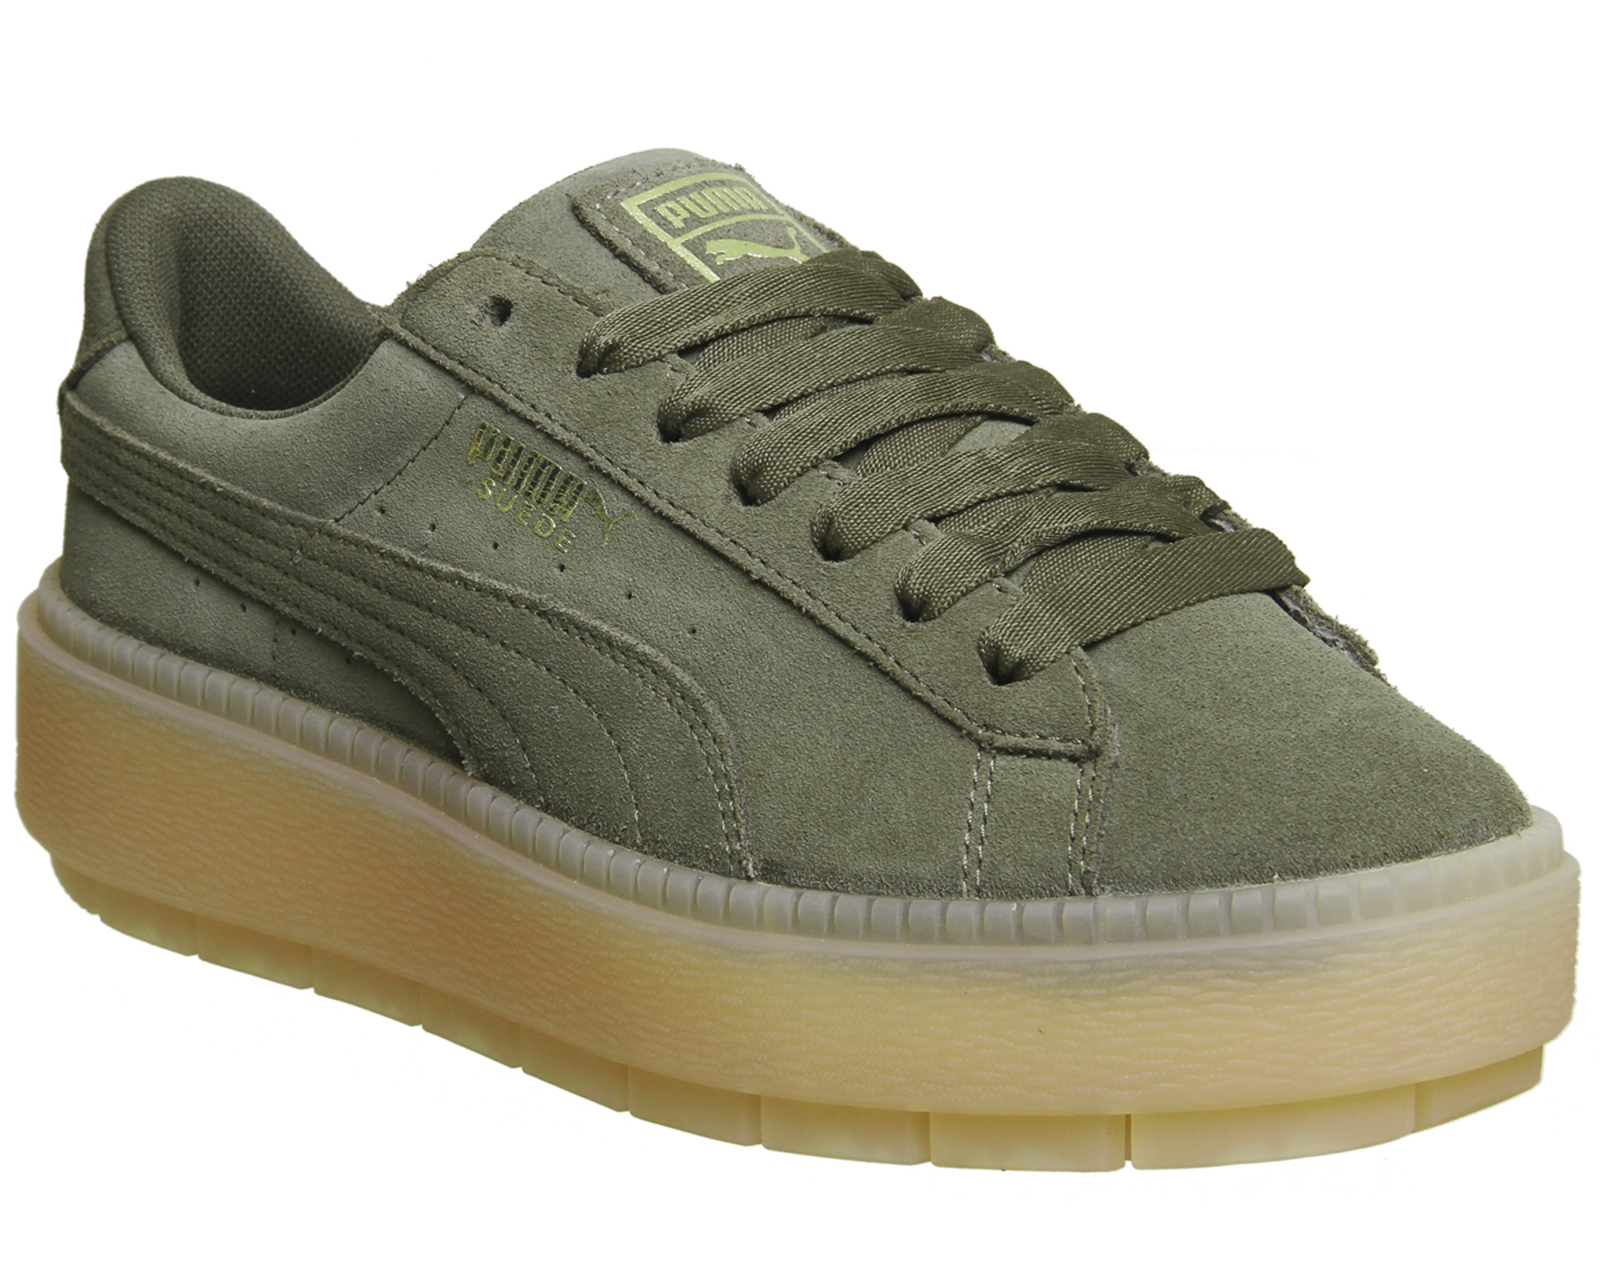 cd44ec90dfb0 Sentinel Womens Puma Suede Platform Trace Trainers OLIVE NIGHT VELVET ROPE  Trainers Shoes